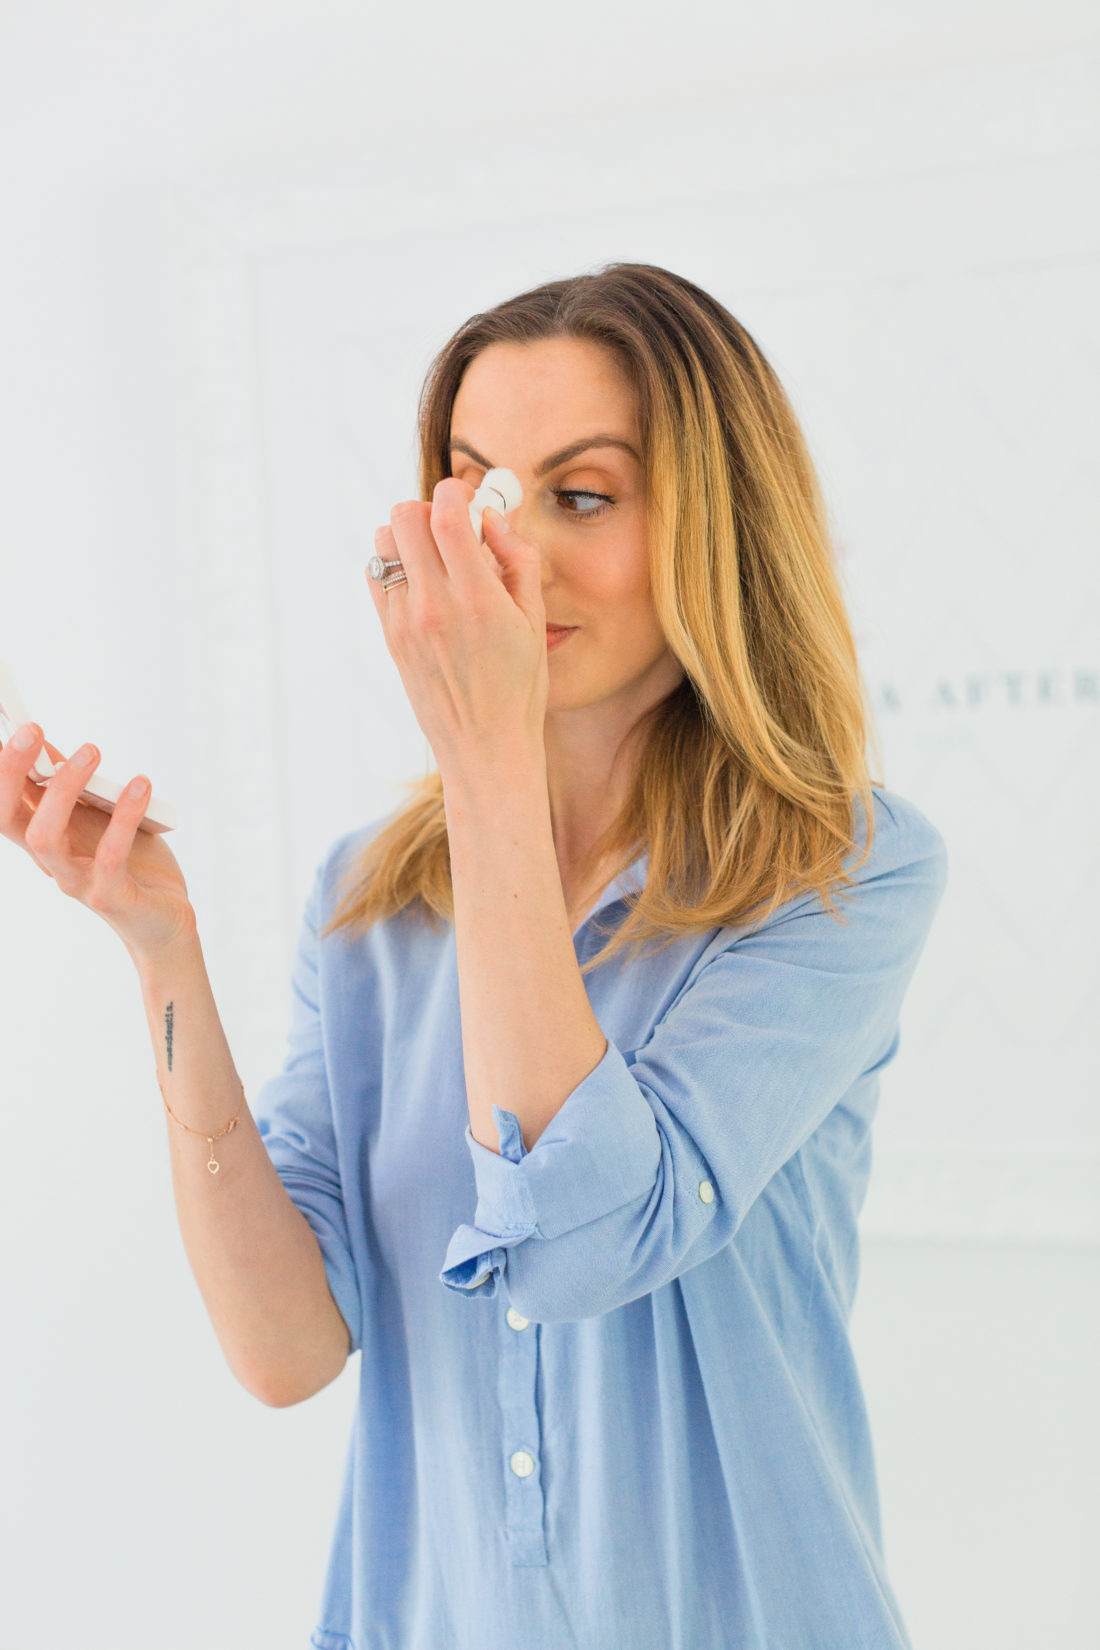 Eva Amurri Martino wears a light blue shirtdress and applies Fenty Beauty blotting powder to her face